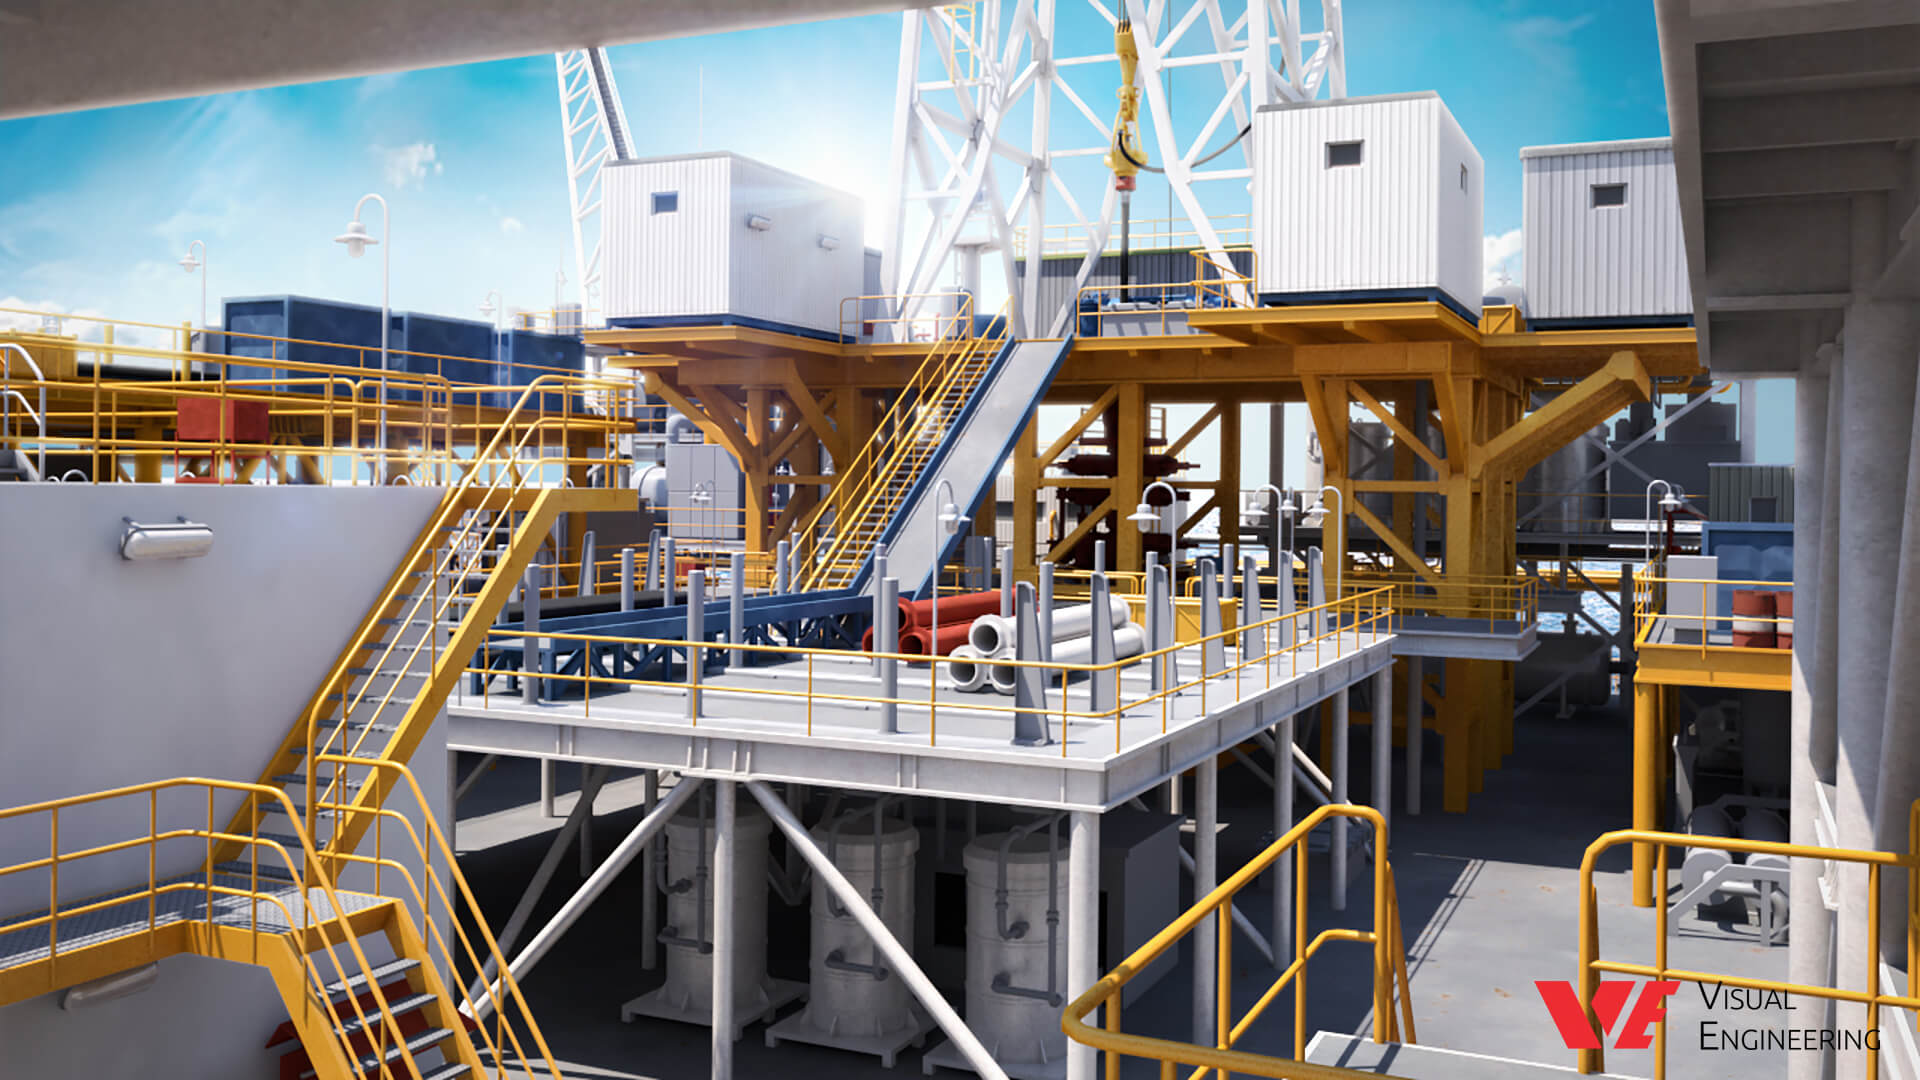 VE-Home-OurWorks-OilRig_Rendertest3_1920px-001 Our Work